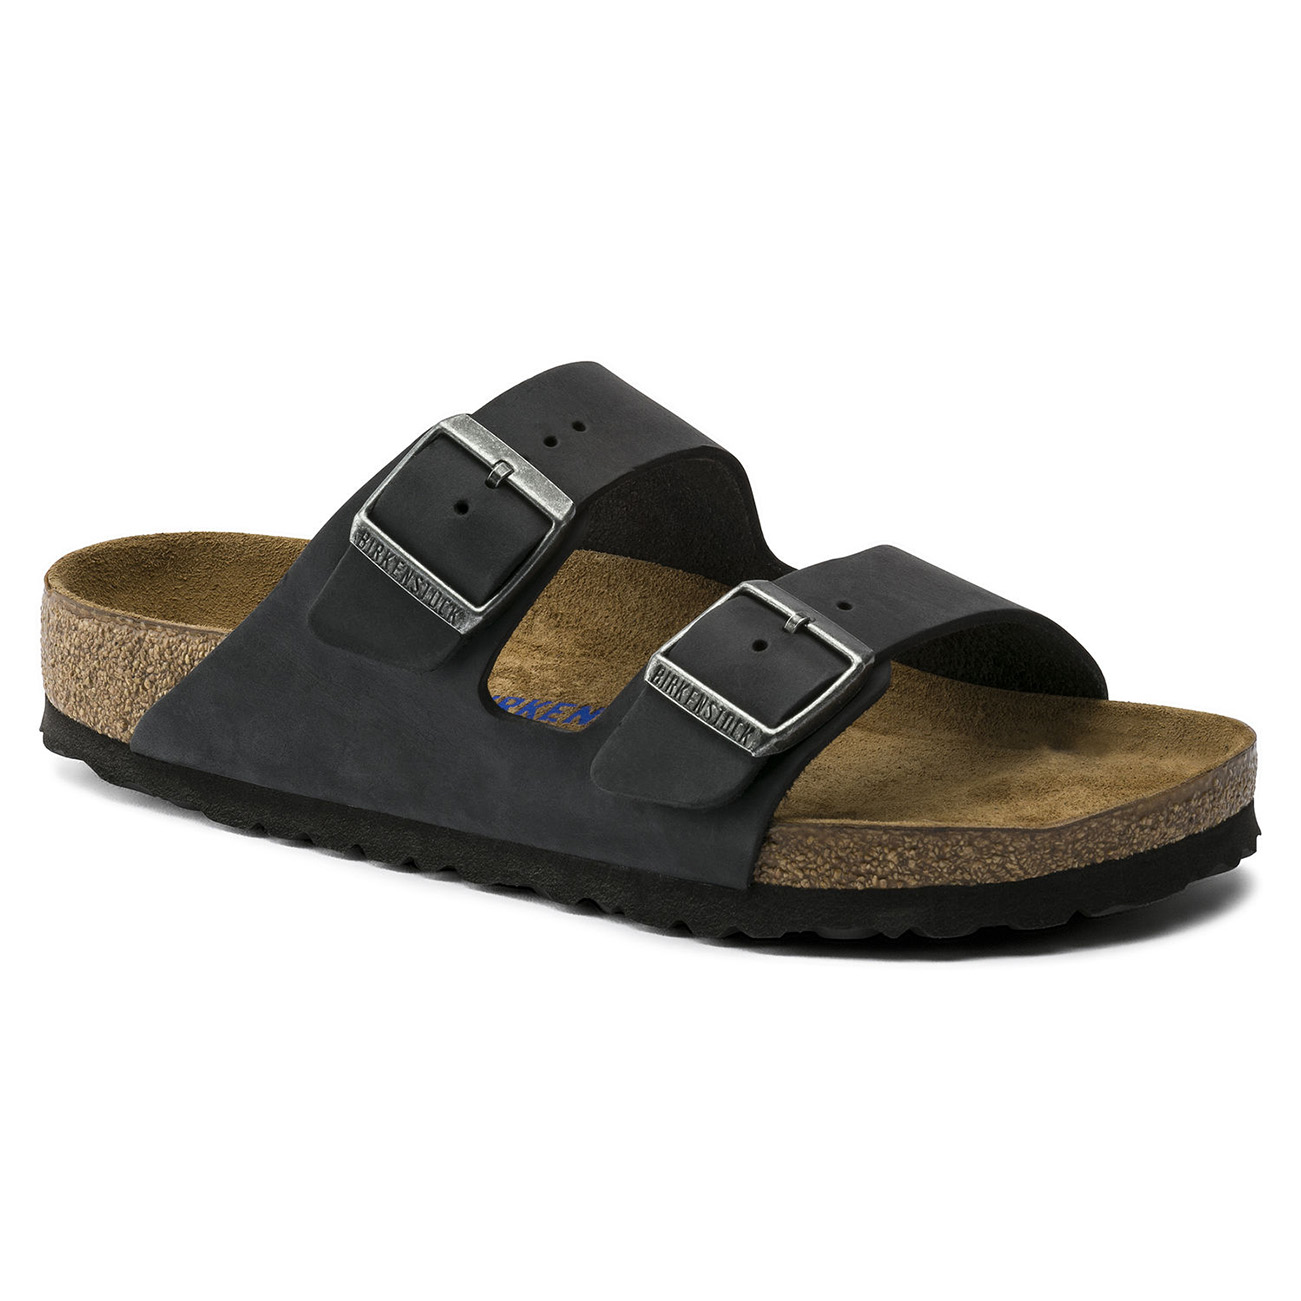 Unisex Adults Birkenstock Arizona Soft Footbed